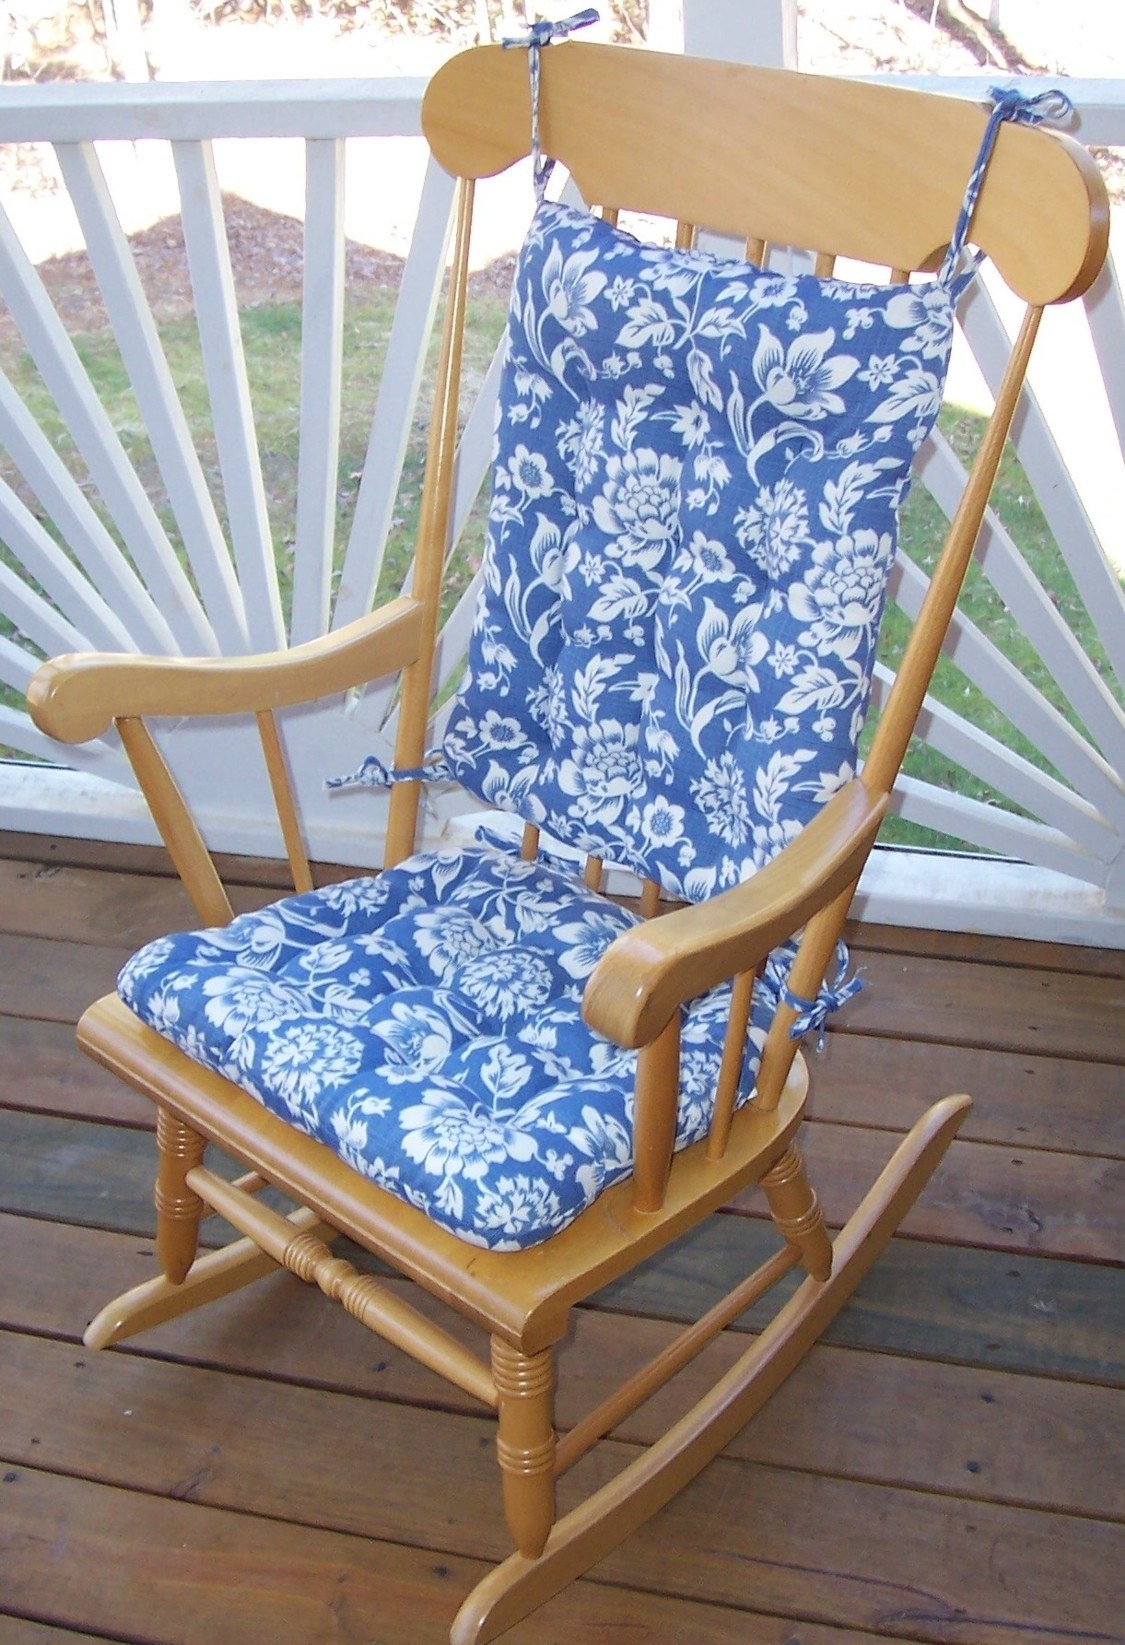 Beautiful Outdoor Rocking Chair Cushions — All Modern Rocking Chairs In Outdoor Rocking Chairs With Cushions (View 12 of 15)